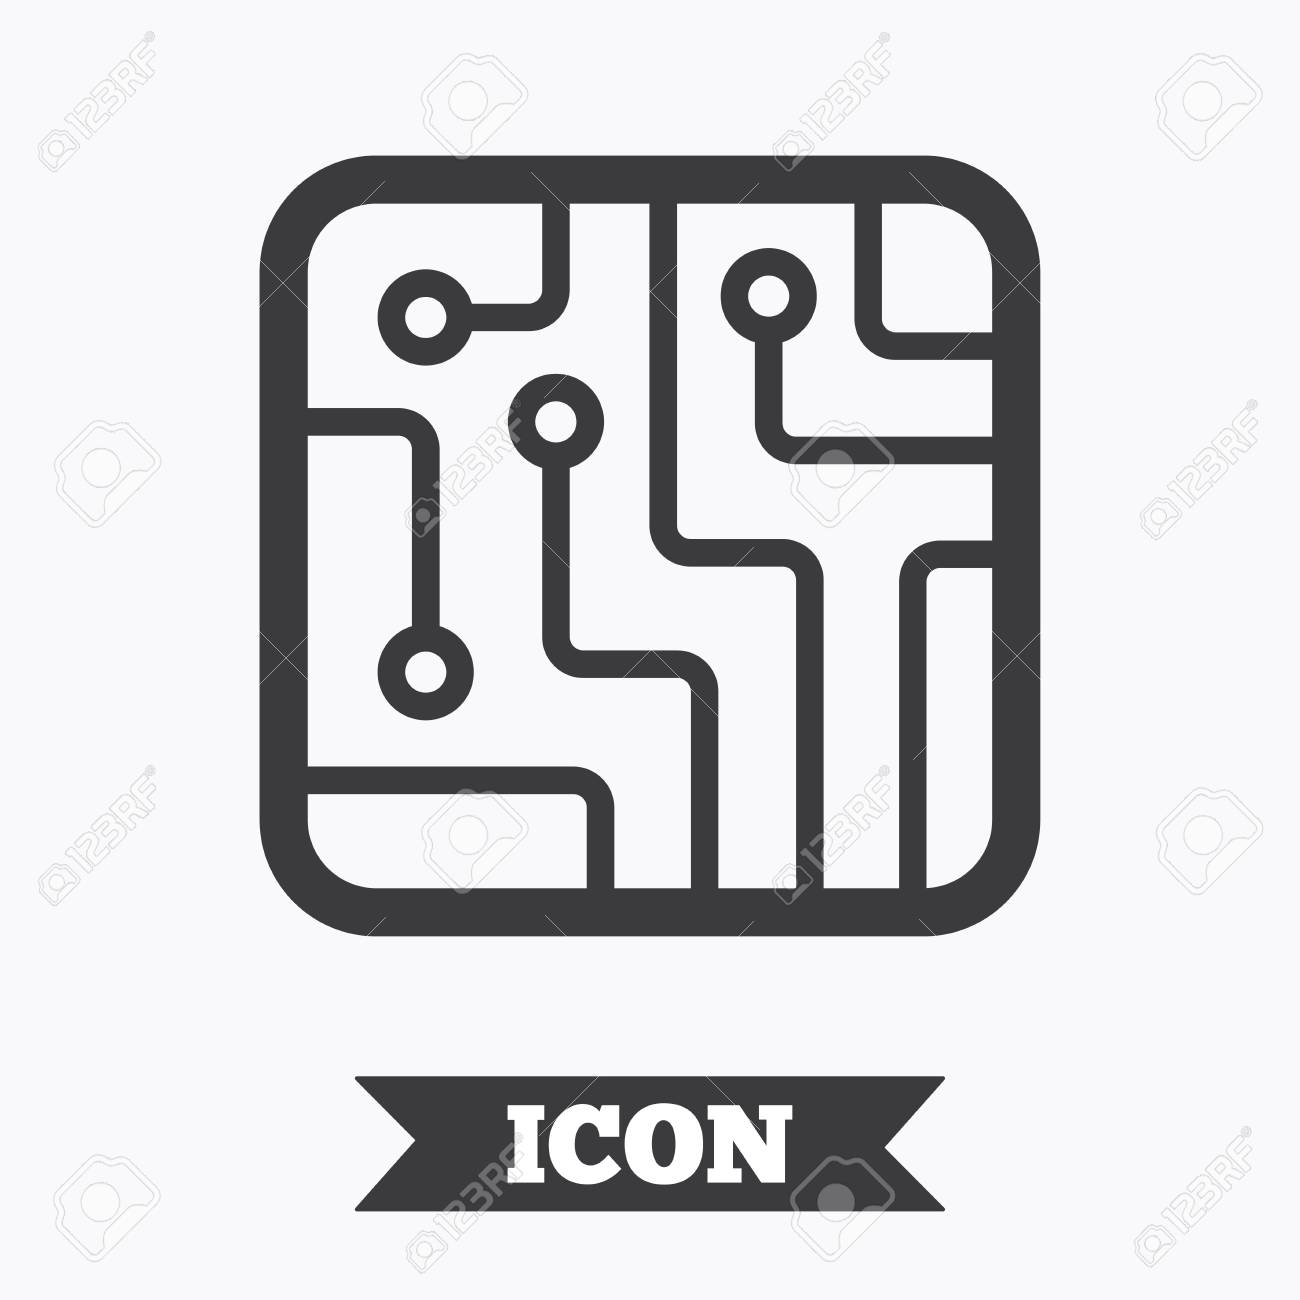 Circuit Board Sign Not Lossing Wiring Diagram Signs Icon Technology Scheme Square Symbol Graphic Rh 123rf Com Symbols